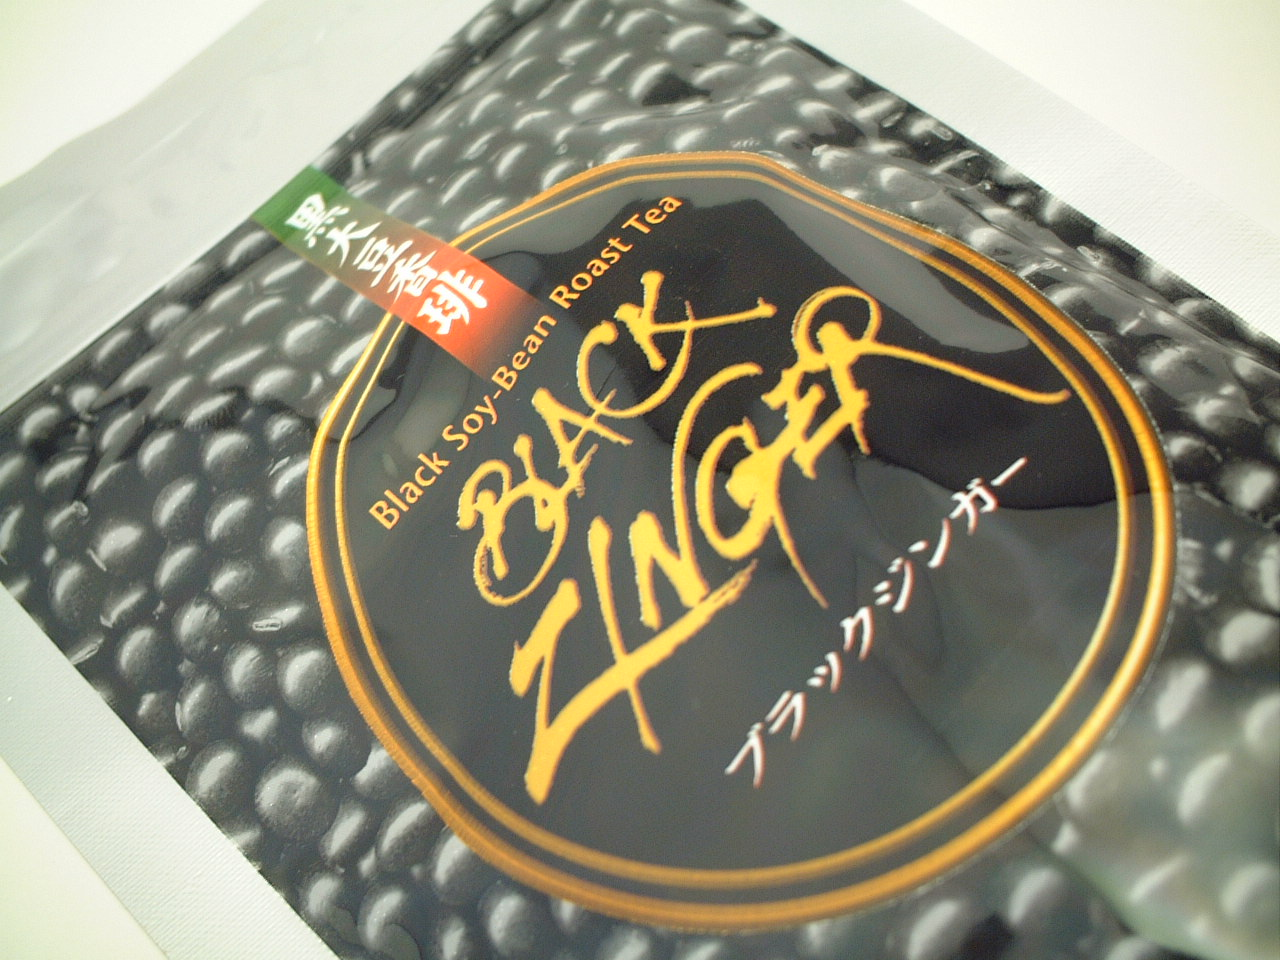 'Black singer' black soybean seminal value pack 120 g